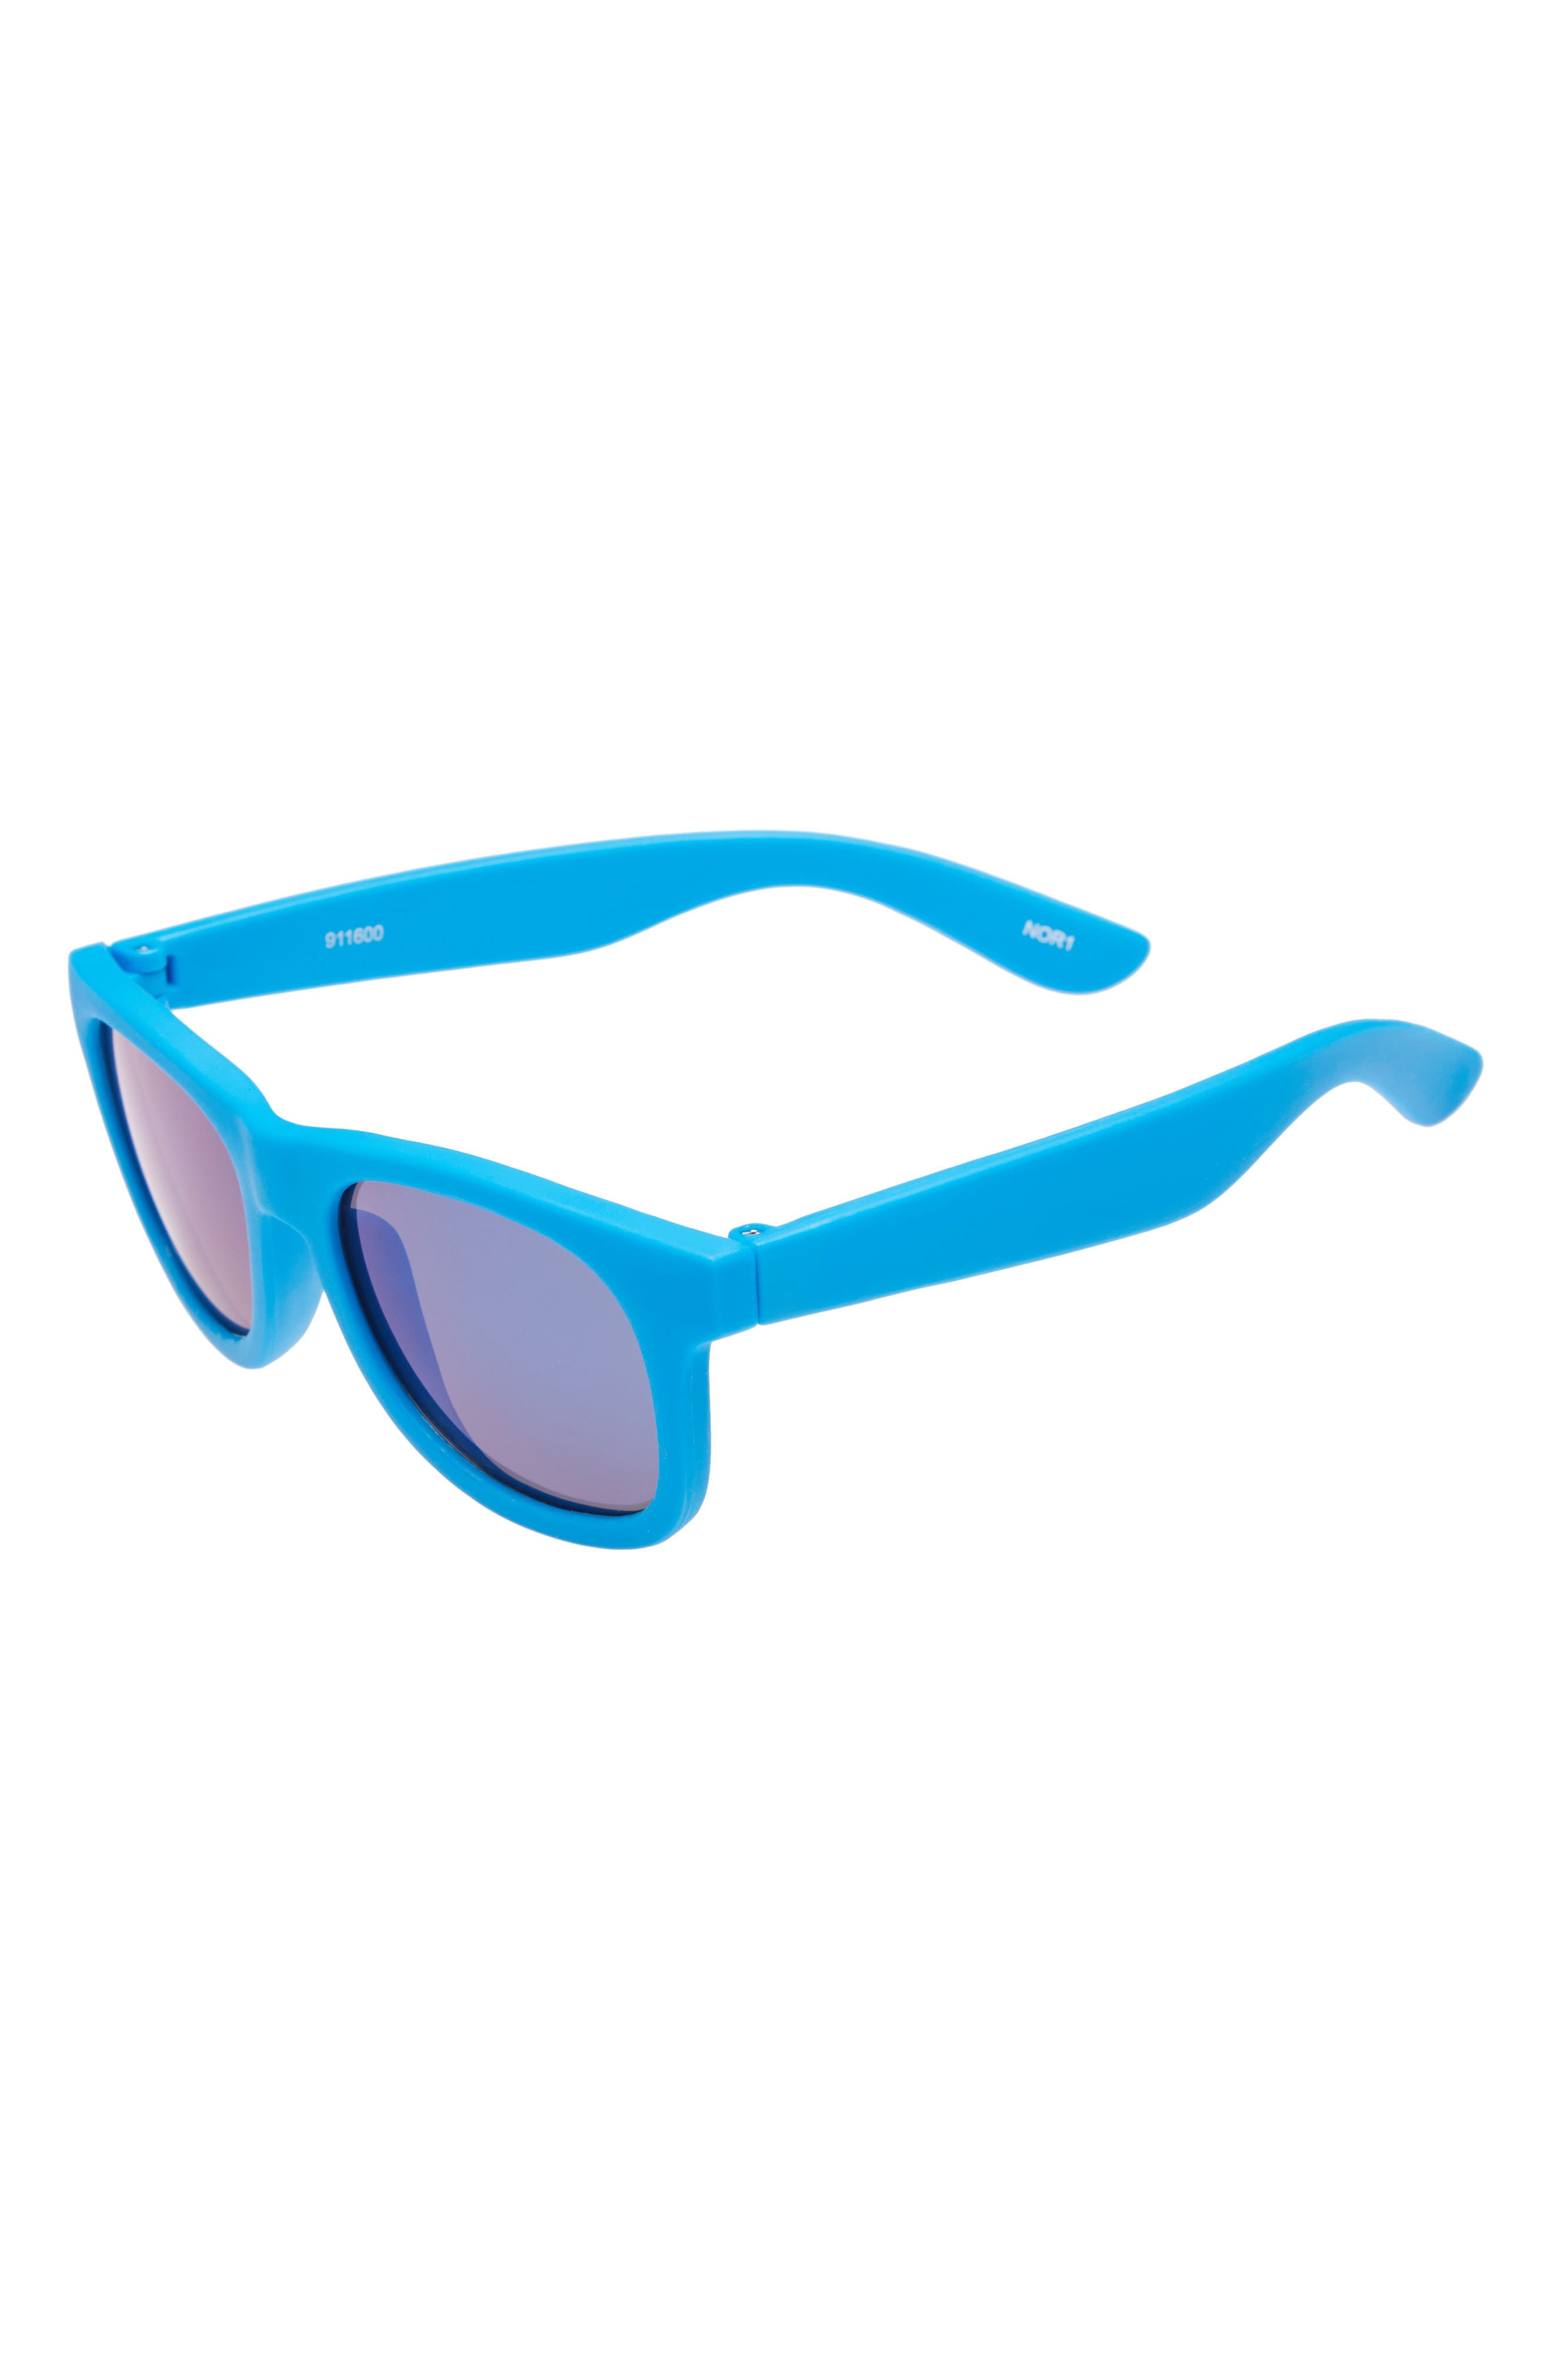 Rectangular Sunglasses,                             Main thumbnail 1, color,                             400